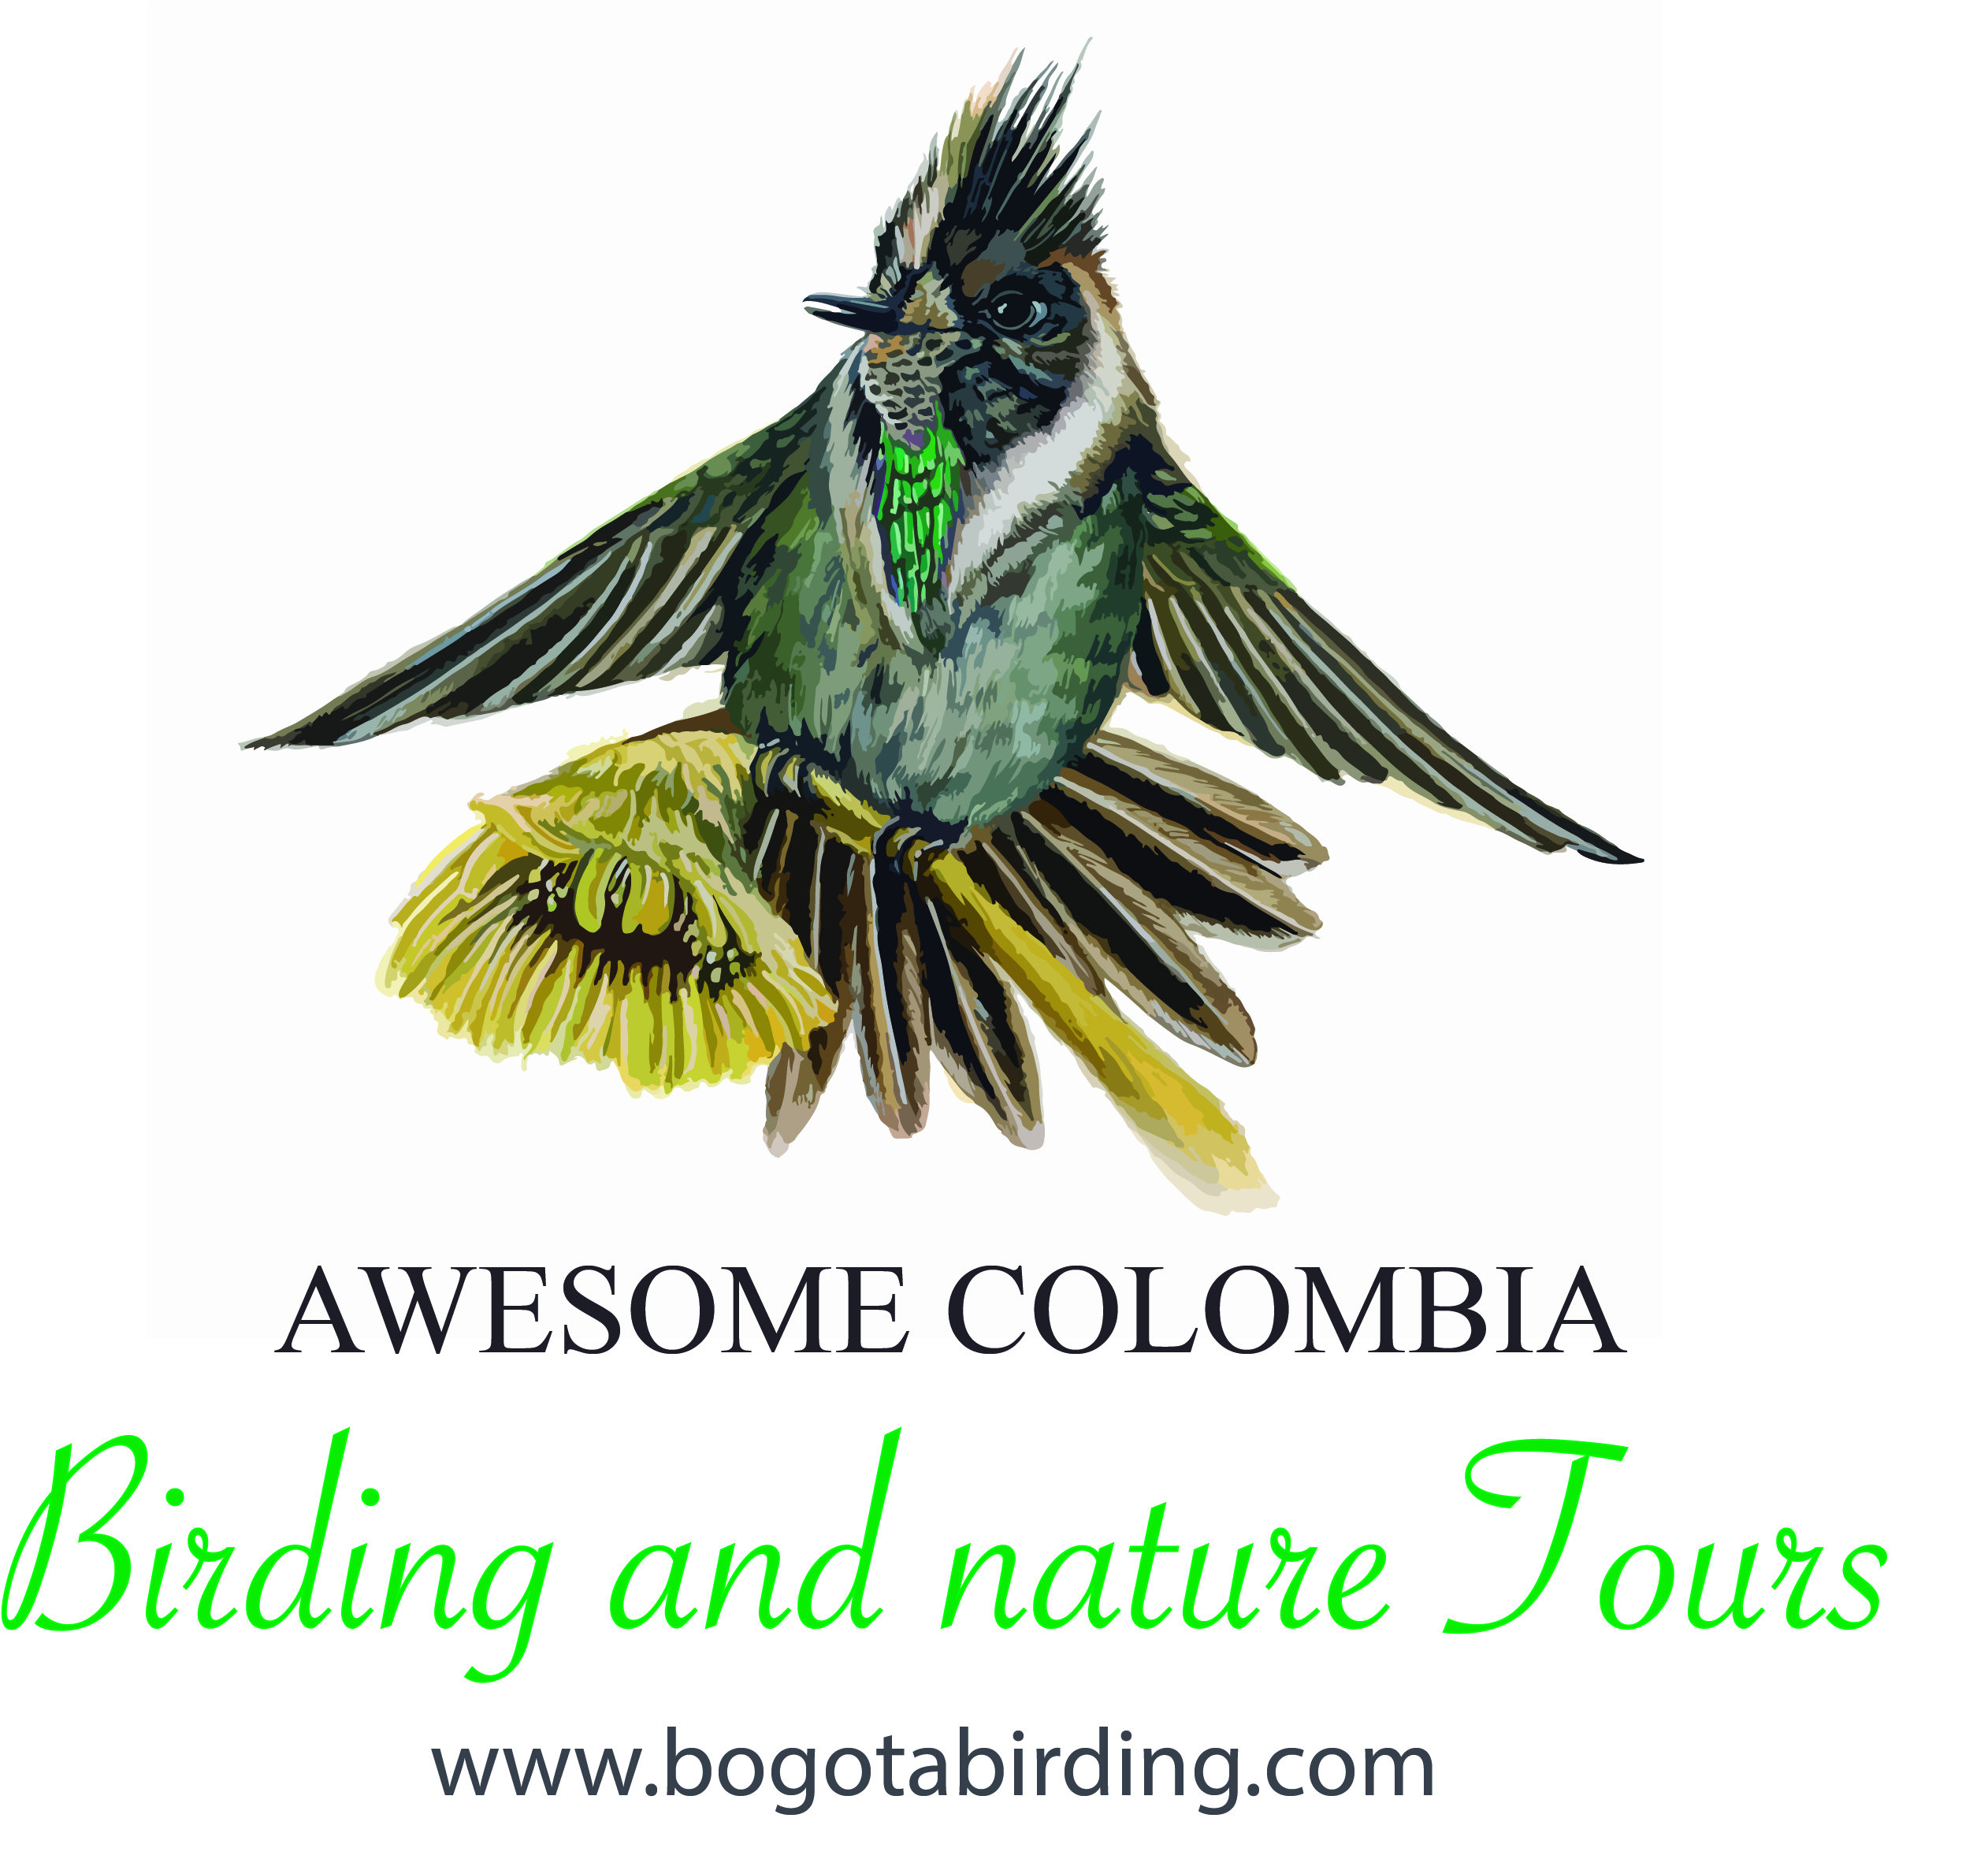 Bogota Birding & Nature Colombia Tours is an company specialized in tourism of birding, nature experiences, wildlife, herping, birdwatching, safari, butterfly, botany, orchids and nature photography.